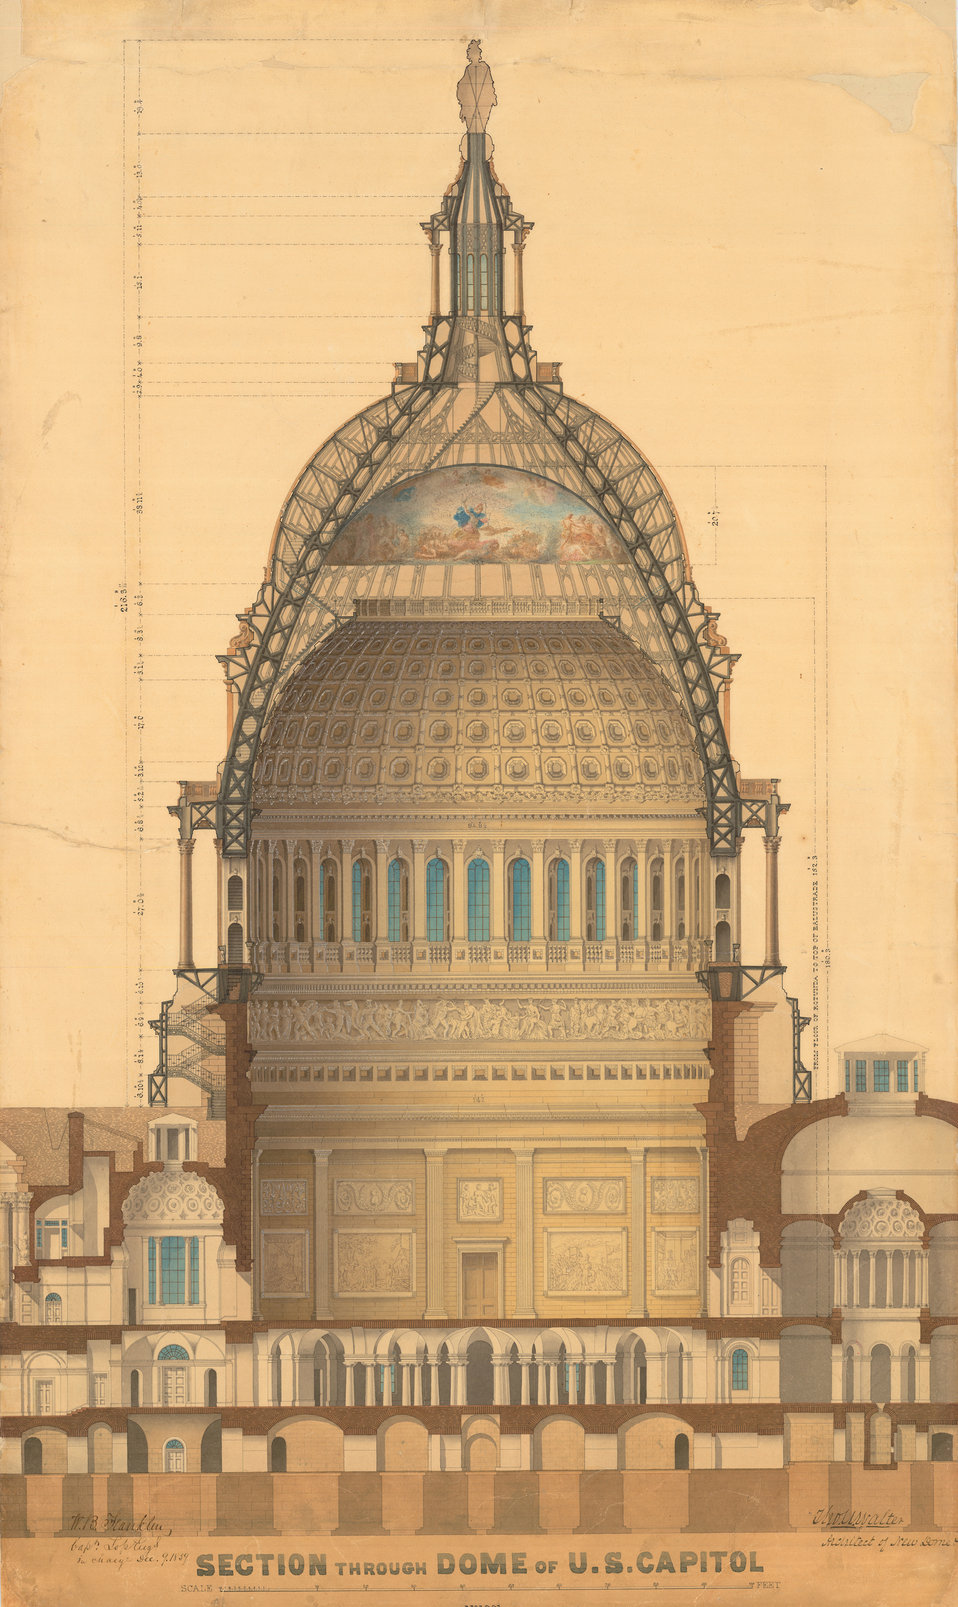 U.S. Capitol Dome Section. Drawing by Thomas Walter, 1859